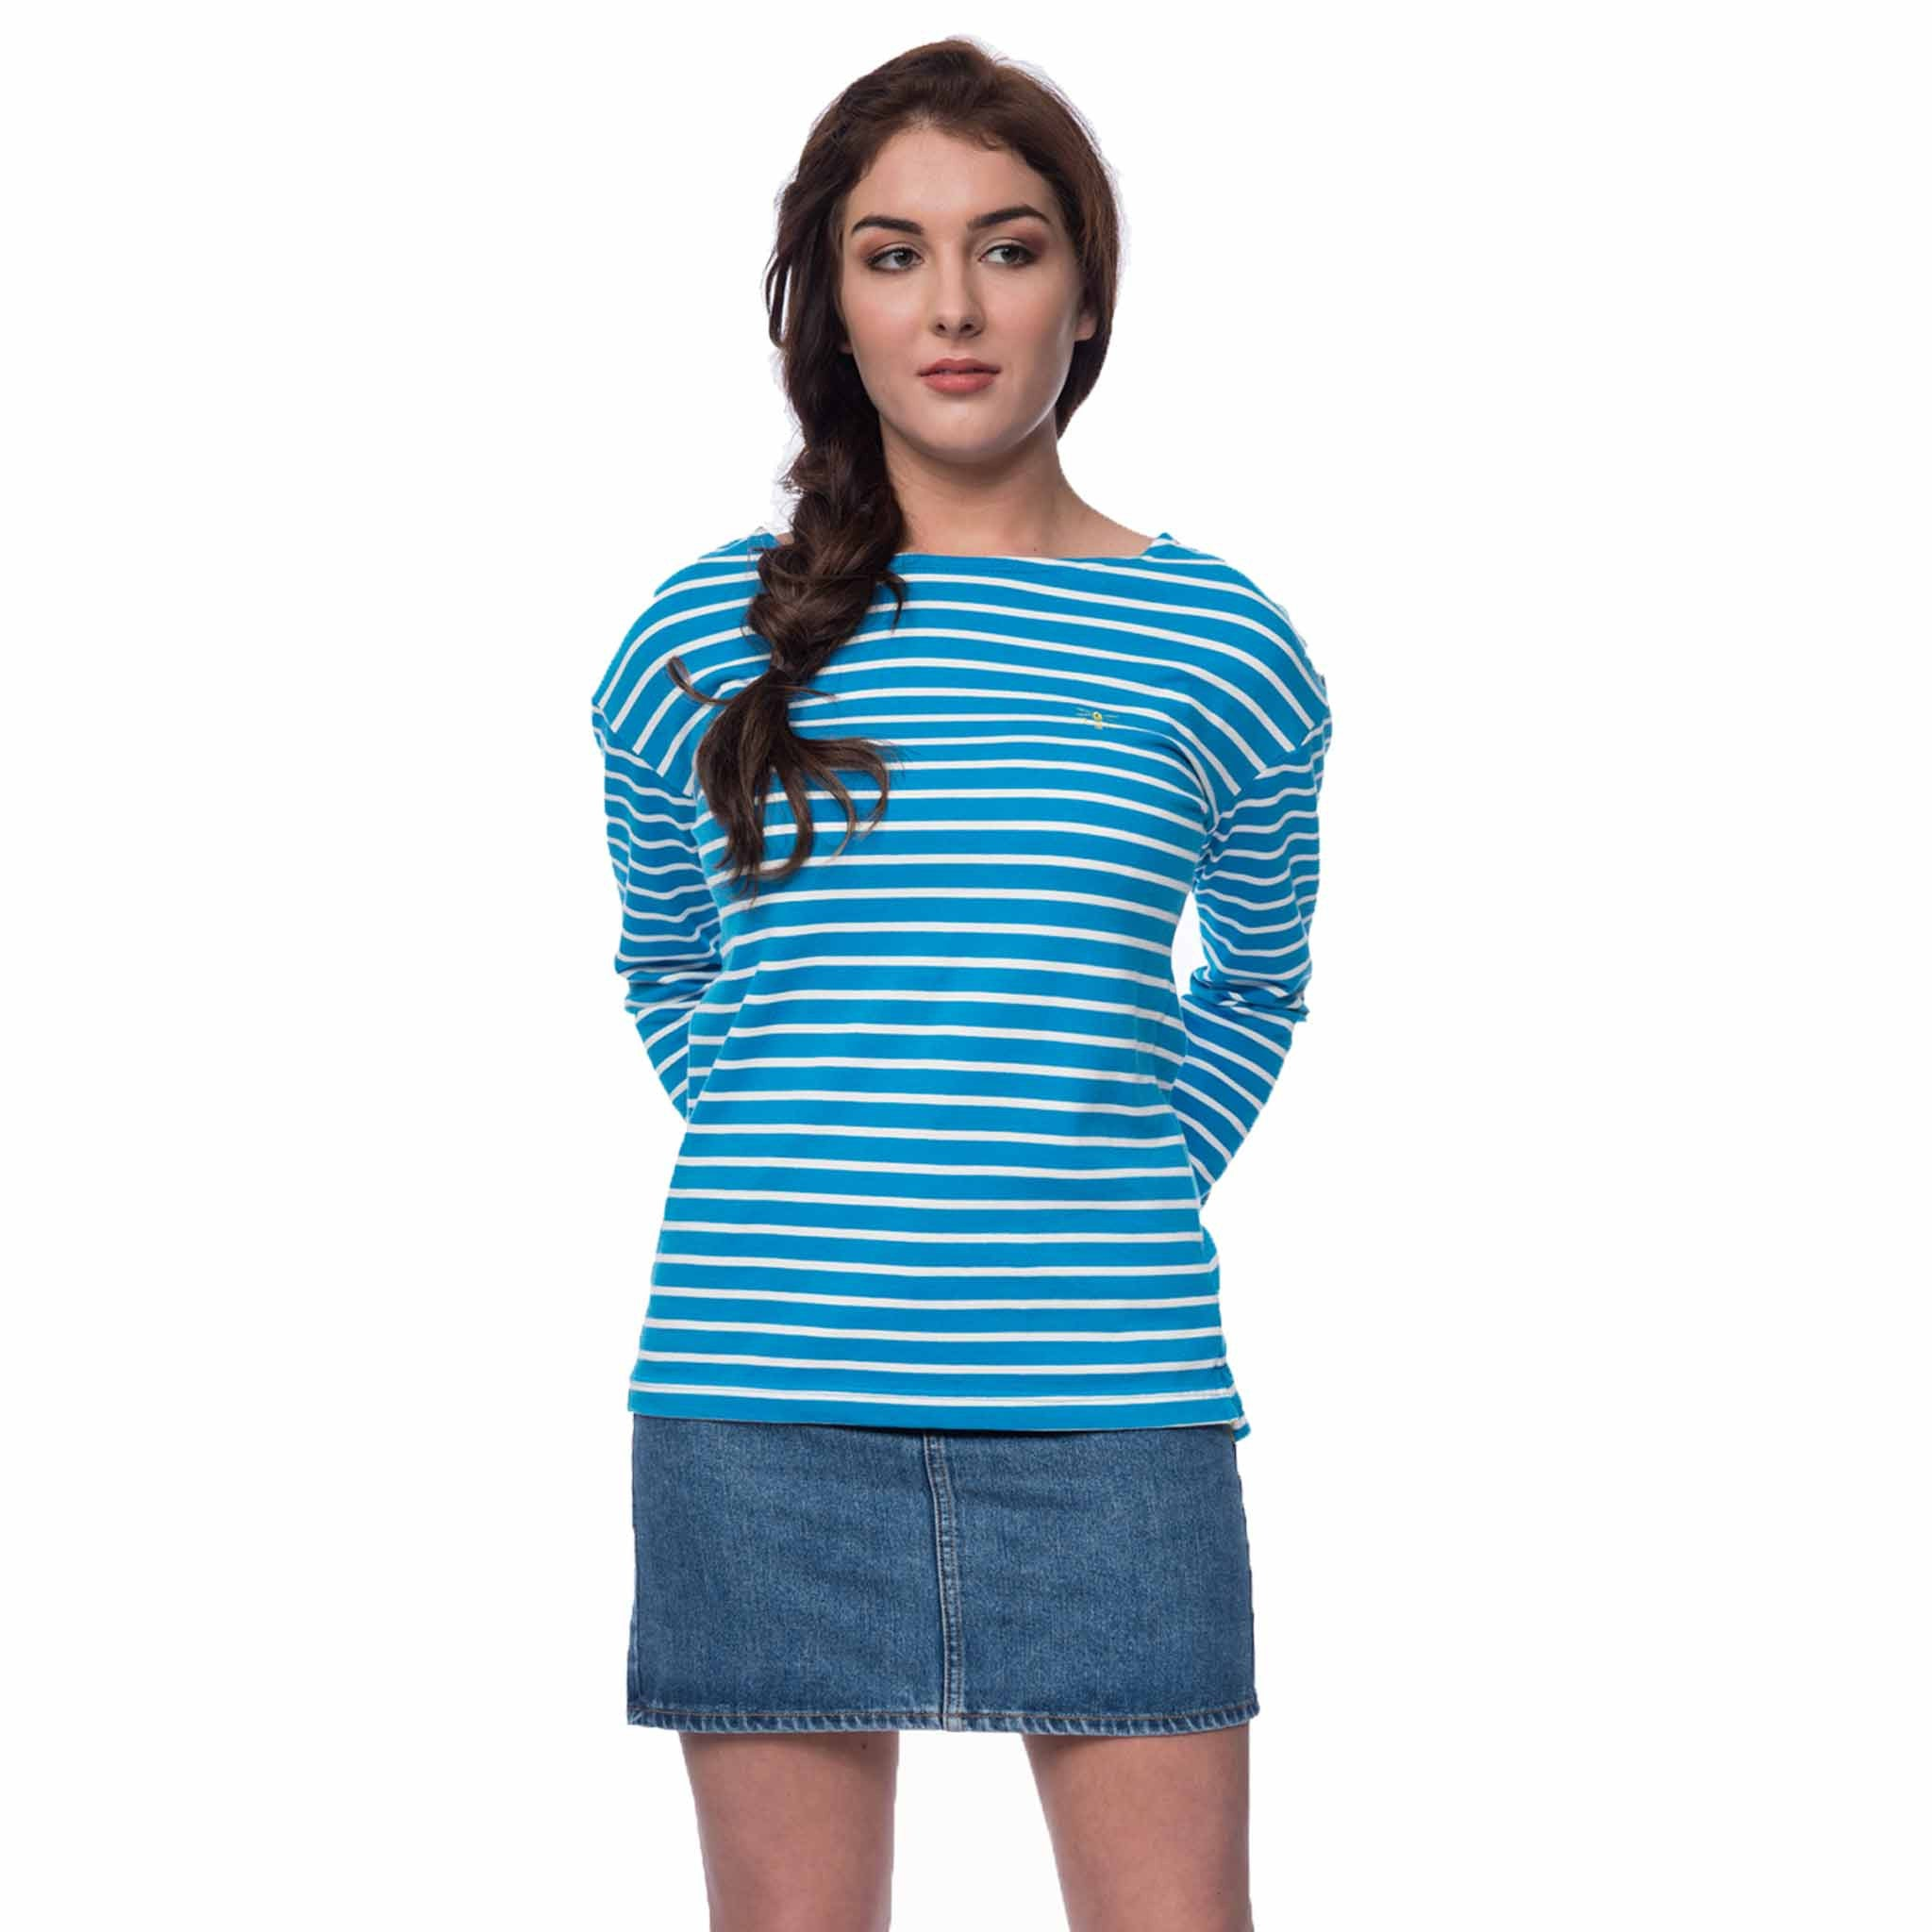 Lighthouse Dune Womens Long Sleeve Top in Blue Striped